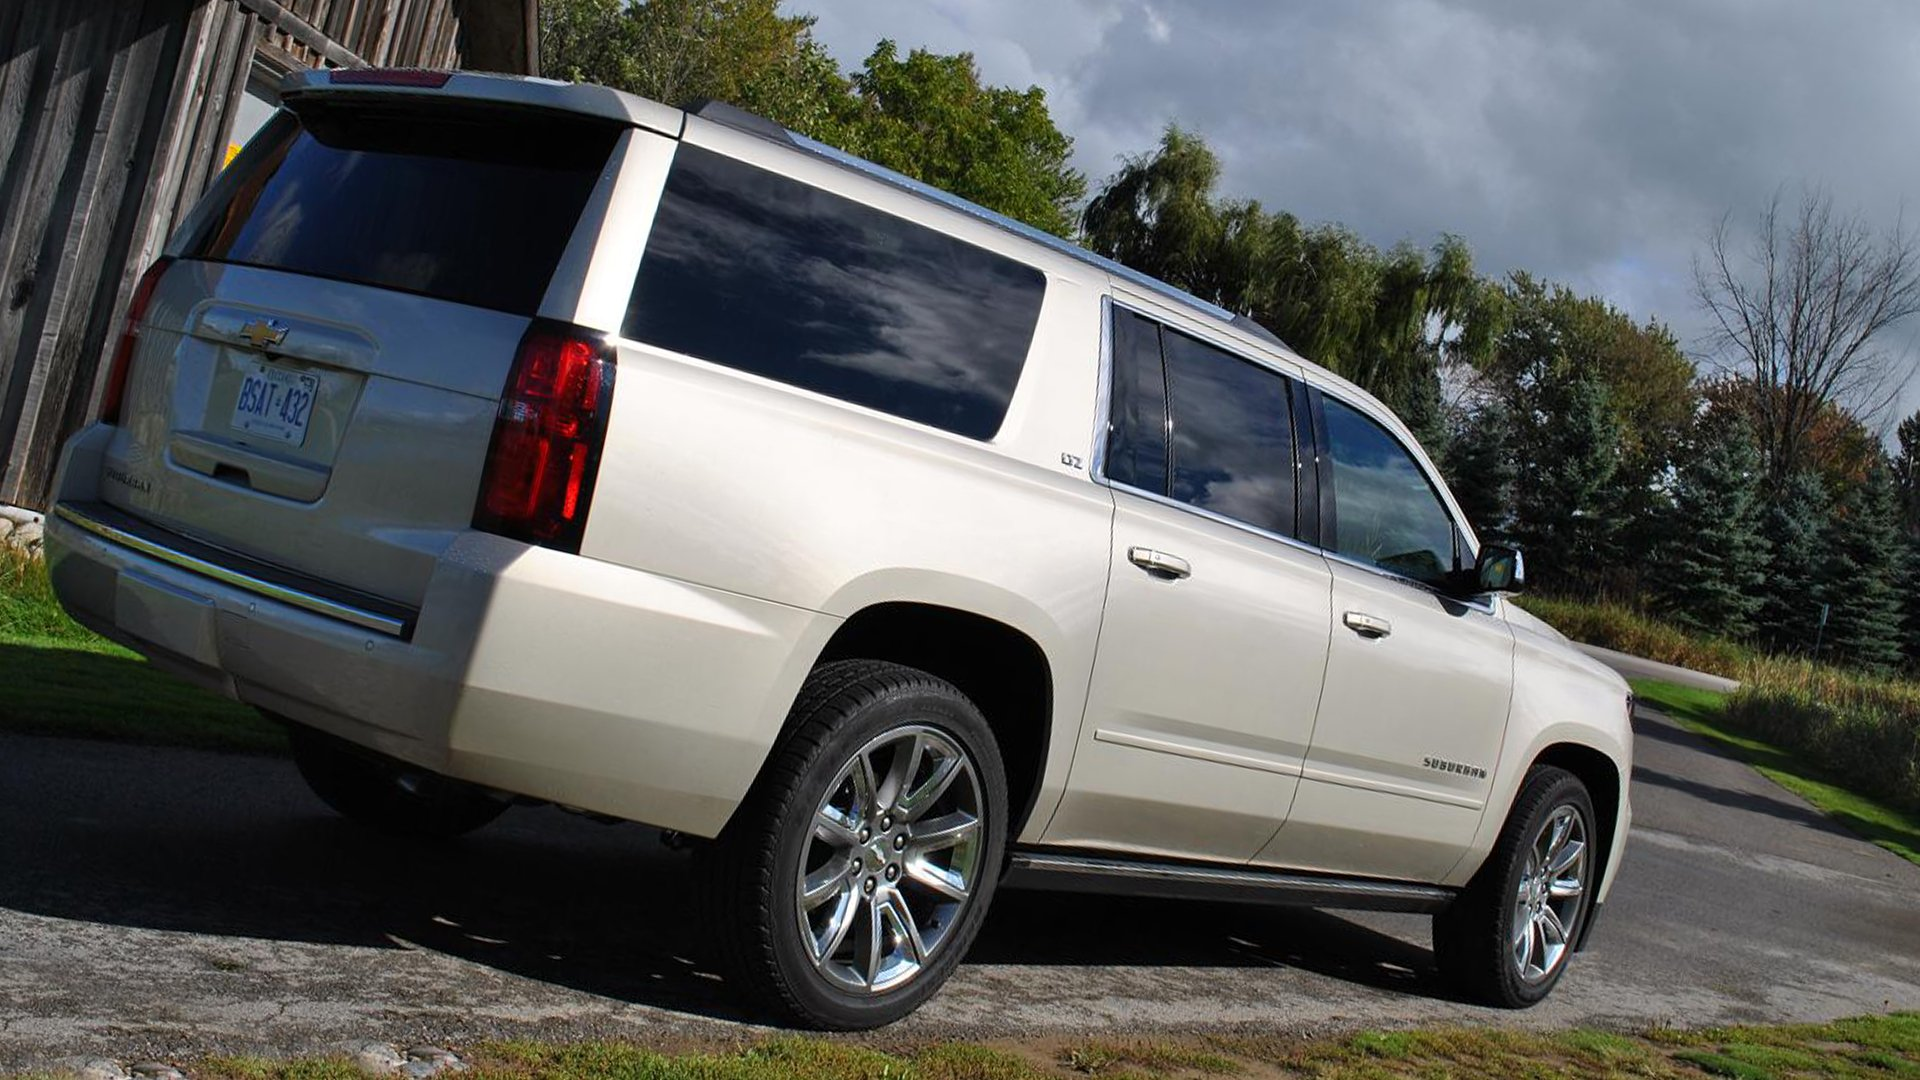 Chevrolet Suburban Wallpaper Andriod iPhone HD